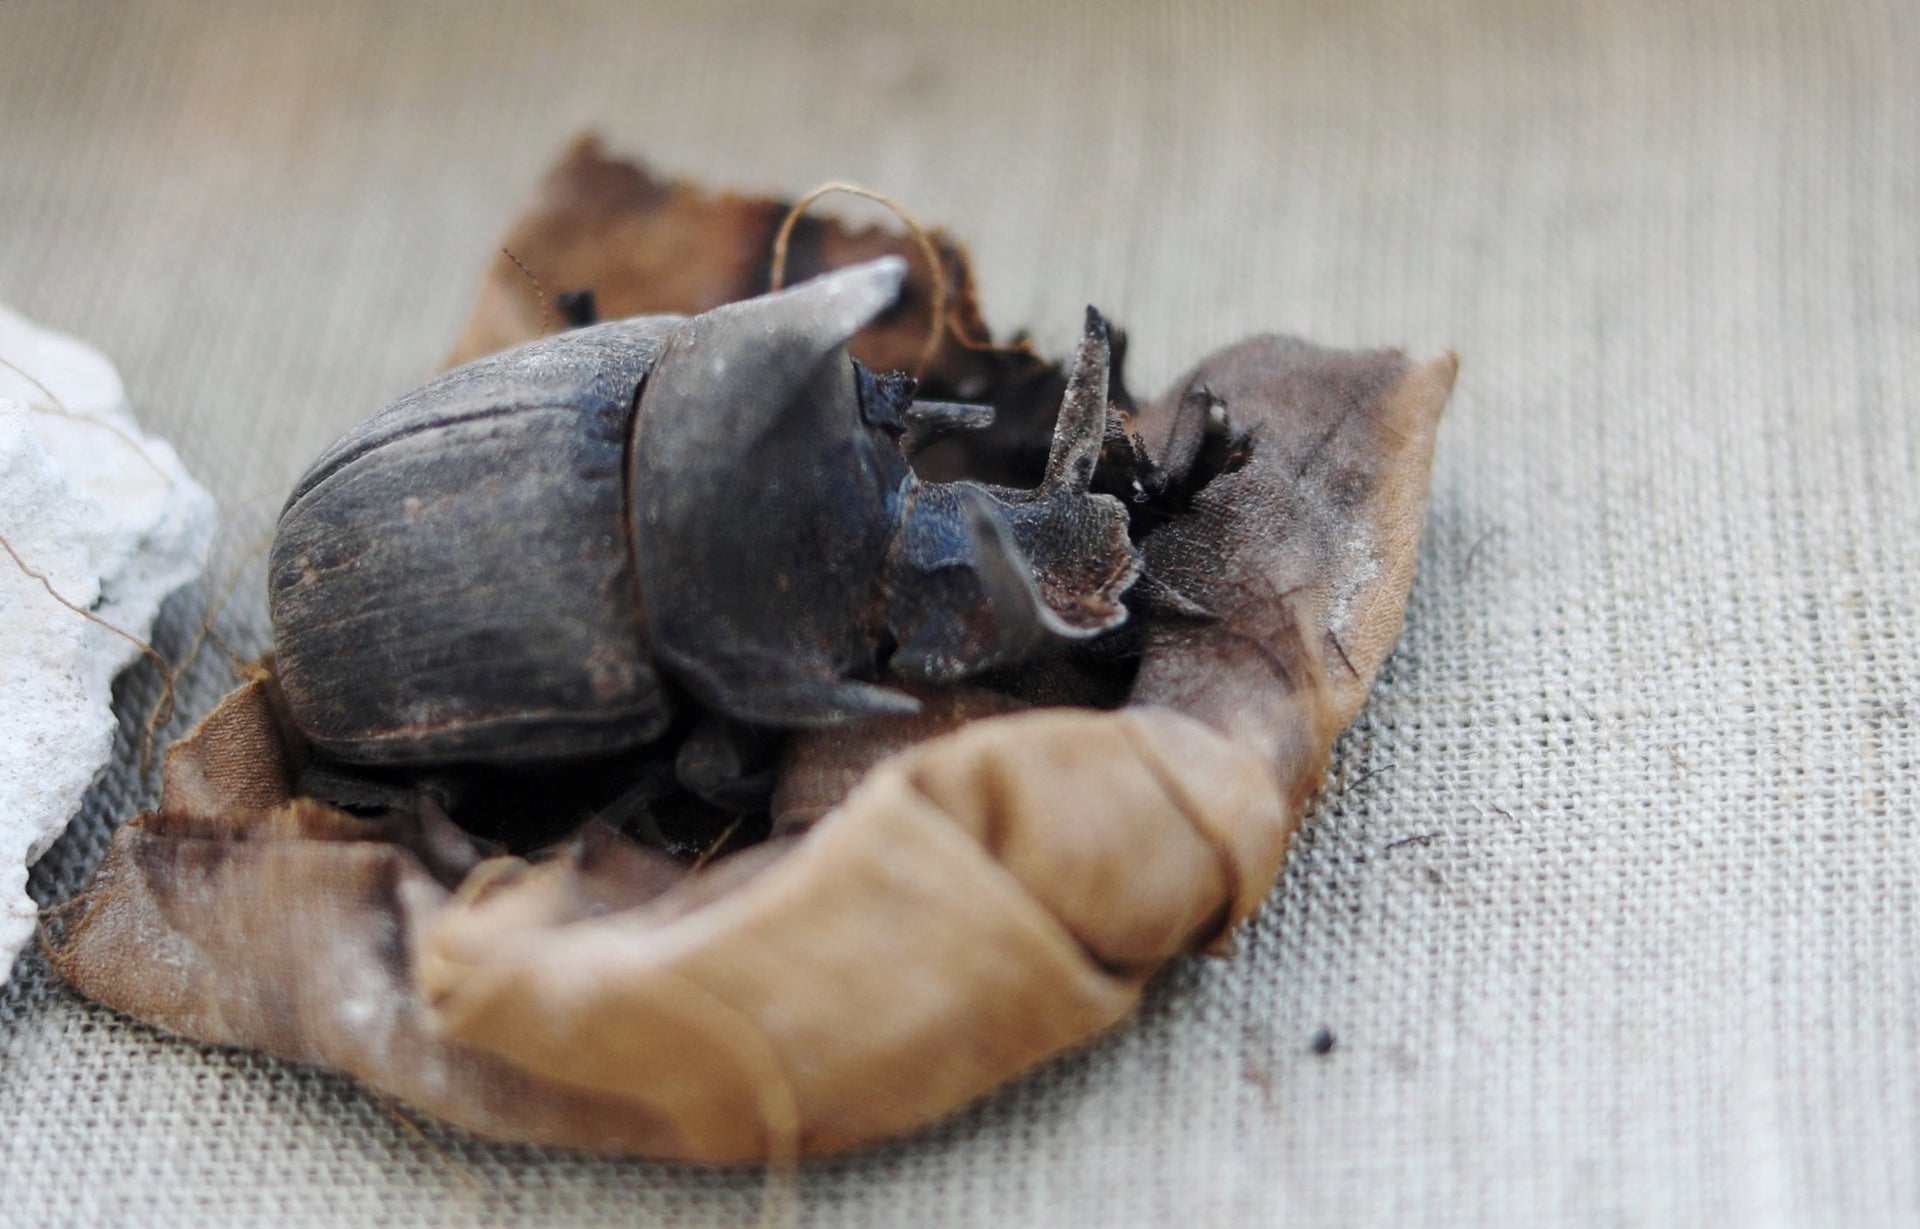 A mummified scarab inside the tomb of Khufu-Imhat on display, at the Saqqara area near its necropolis, in Giza, Egypt November 10, 2018.